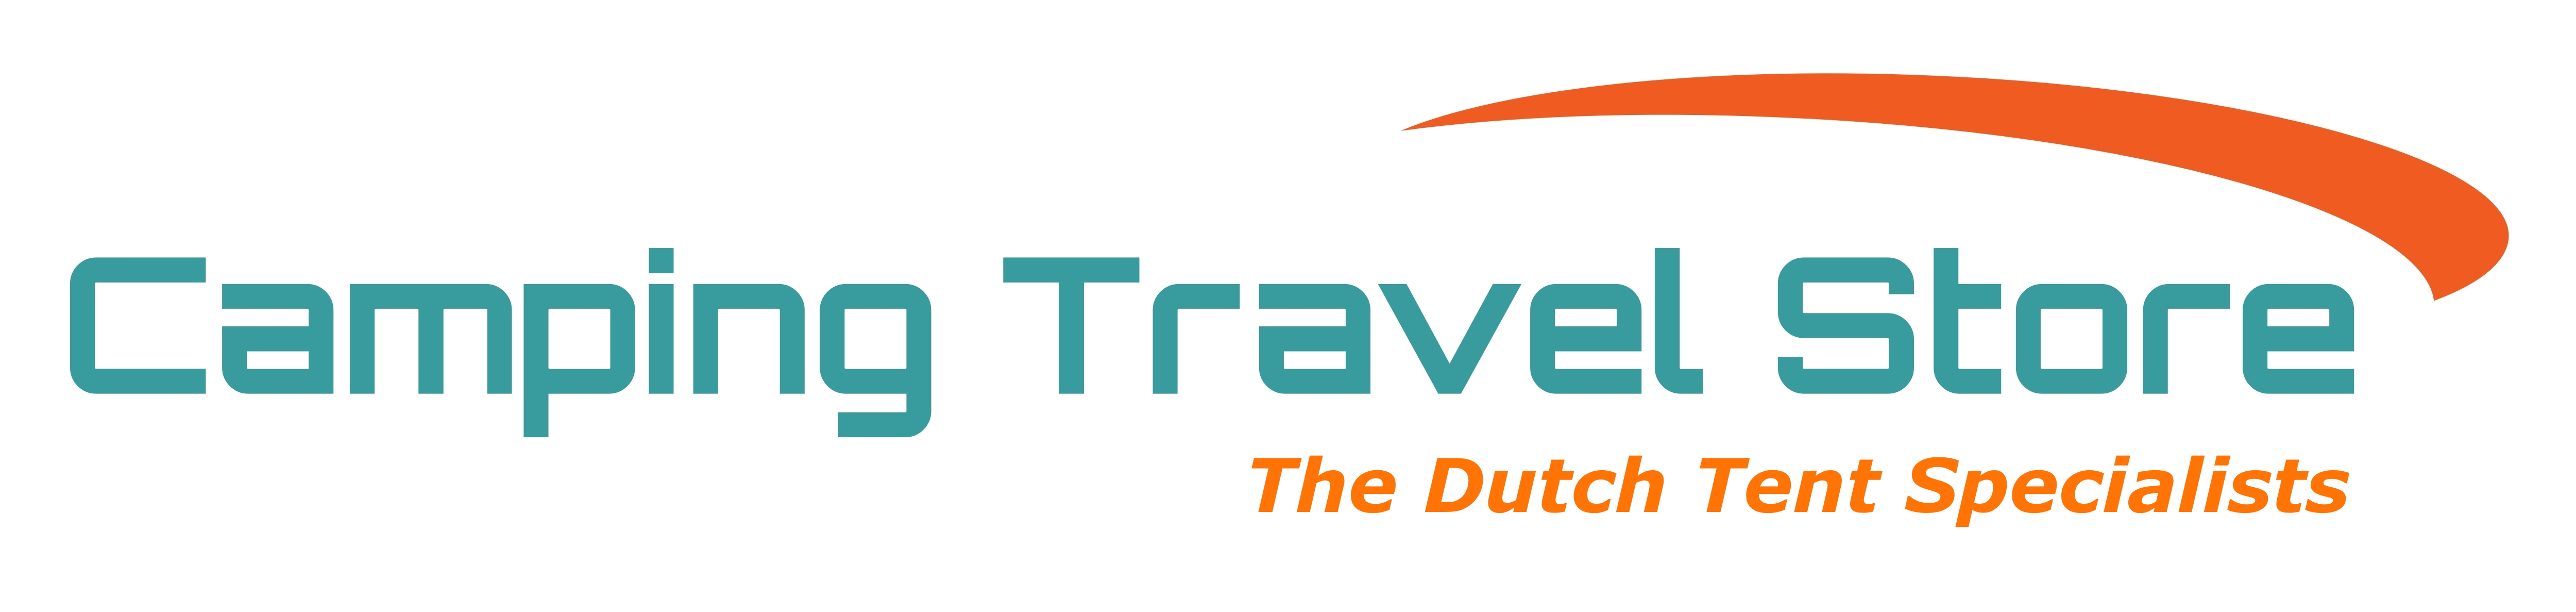 Camping Travel Store logo